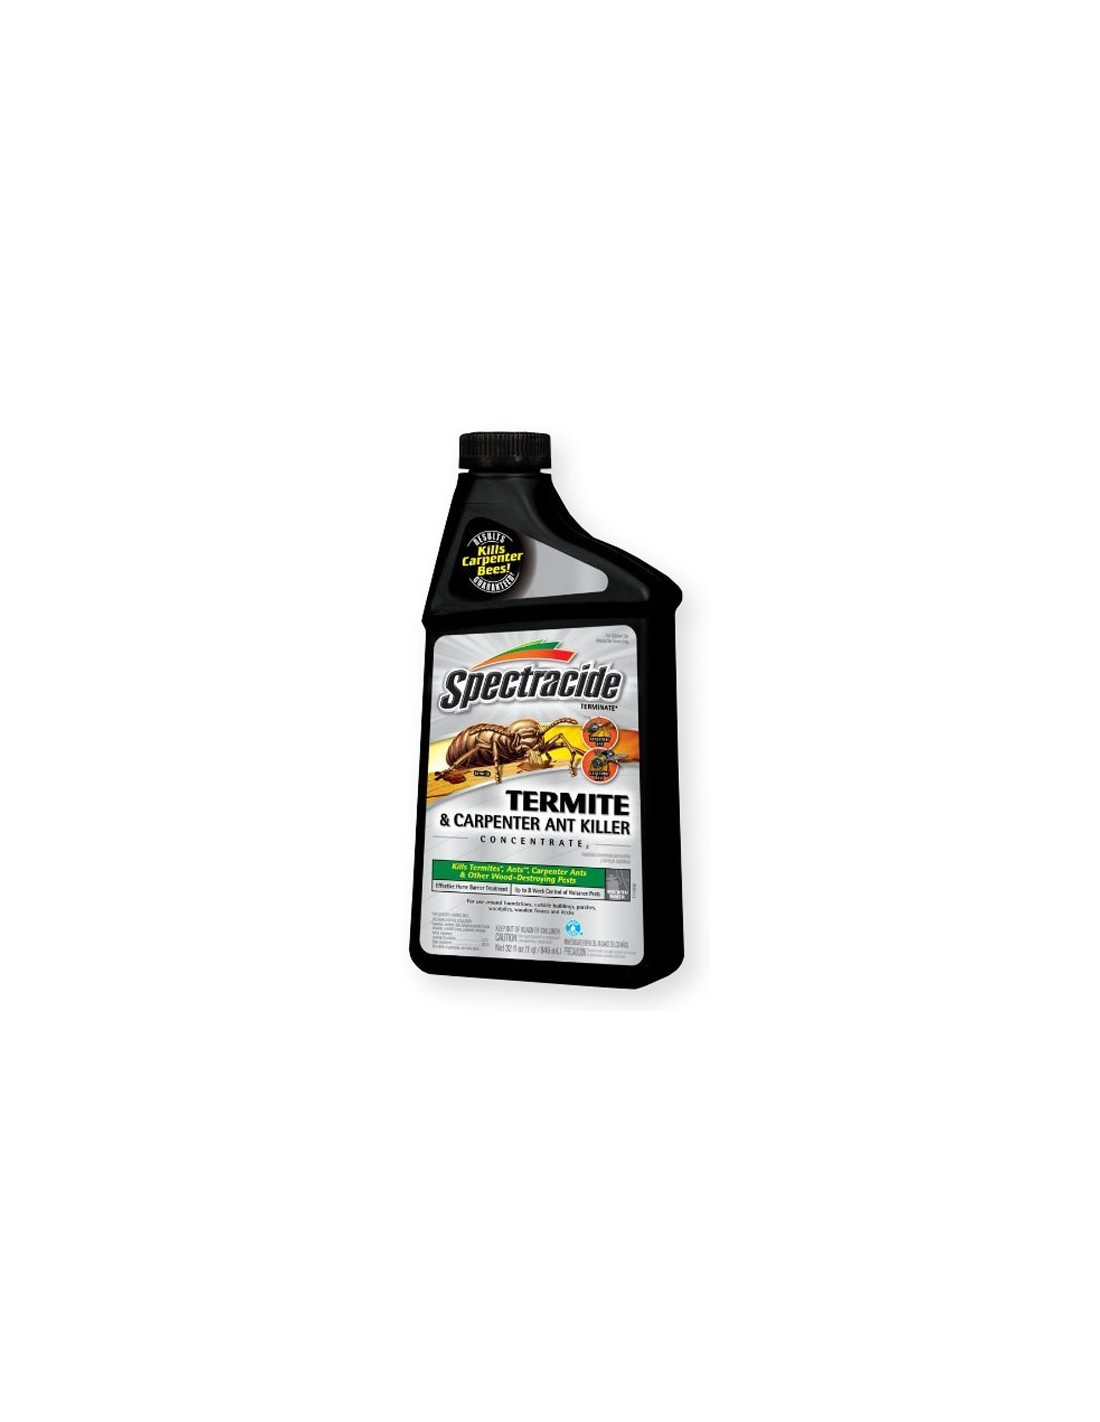 Spectracide Termite and Carpenter Ant Killer Concentrate Questions & Answers